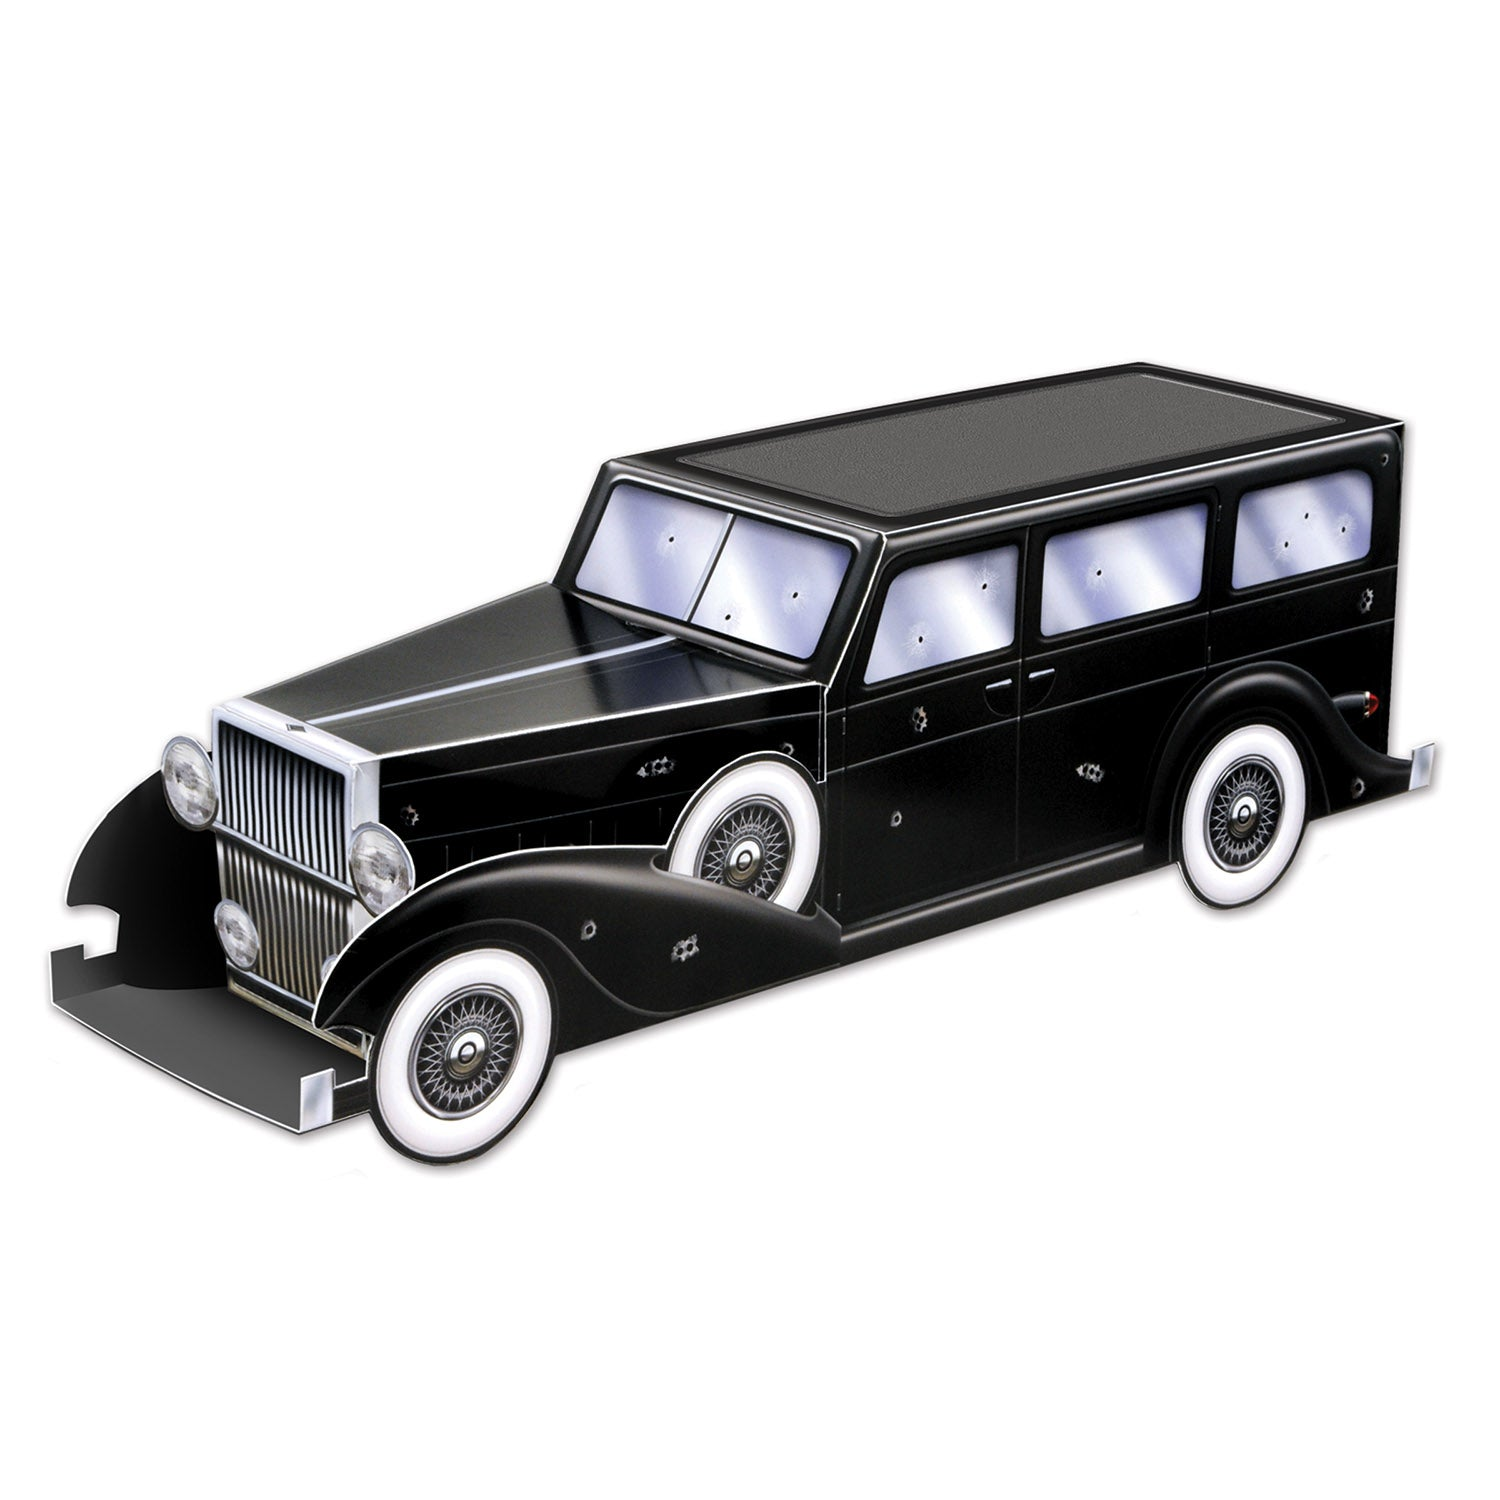 3-D Gangster Car Centerpiece by Beistle - 20's Theme Decorations